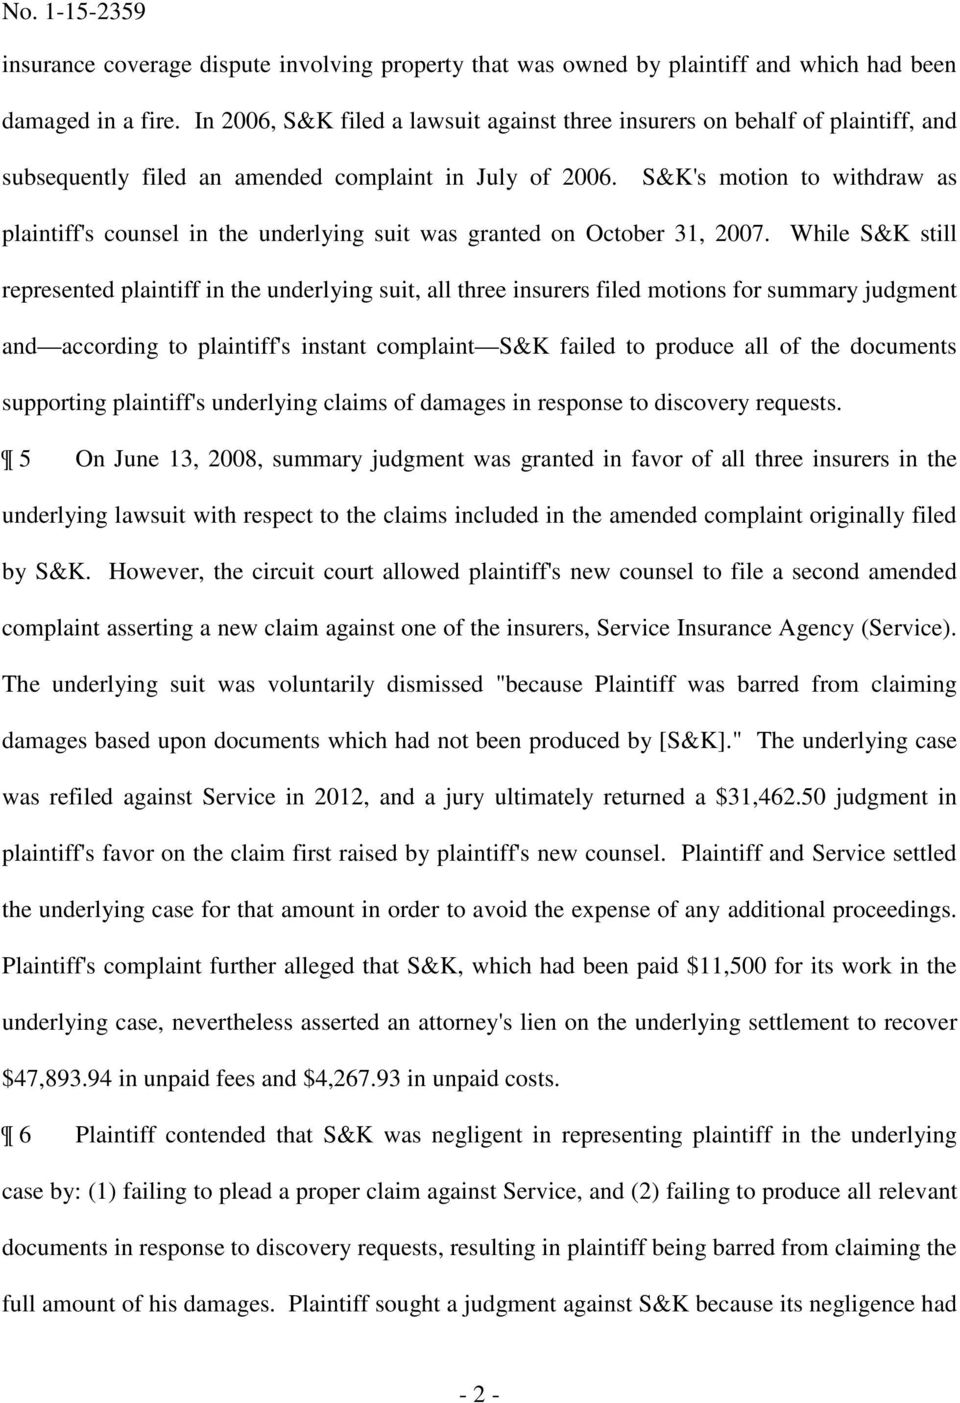 S&K's motion to withdraw as plaintiff's counsel in the underlying suit was granted on October 31, 2007.